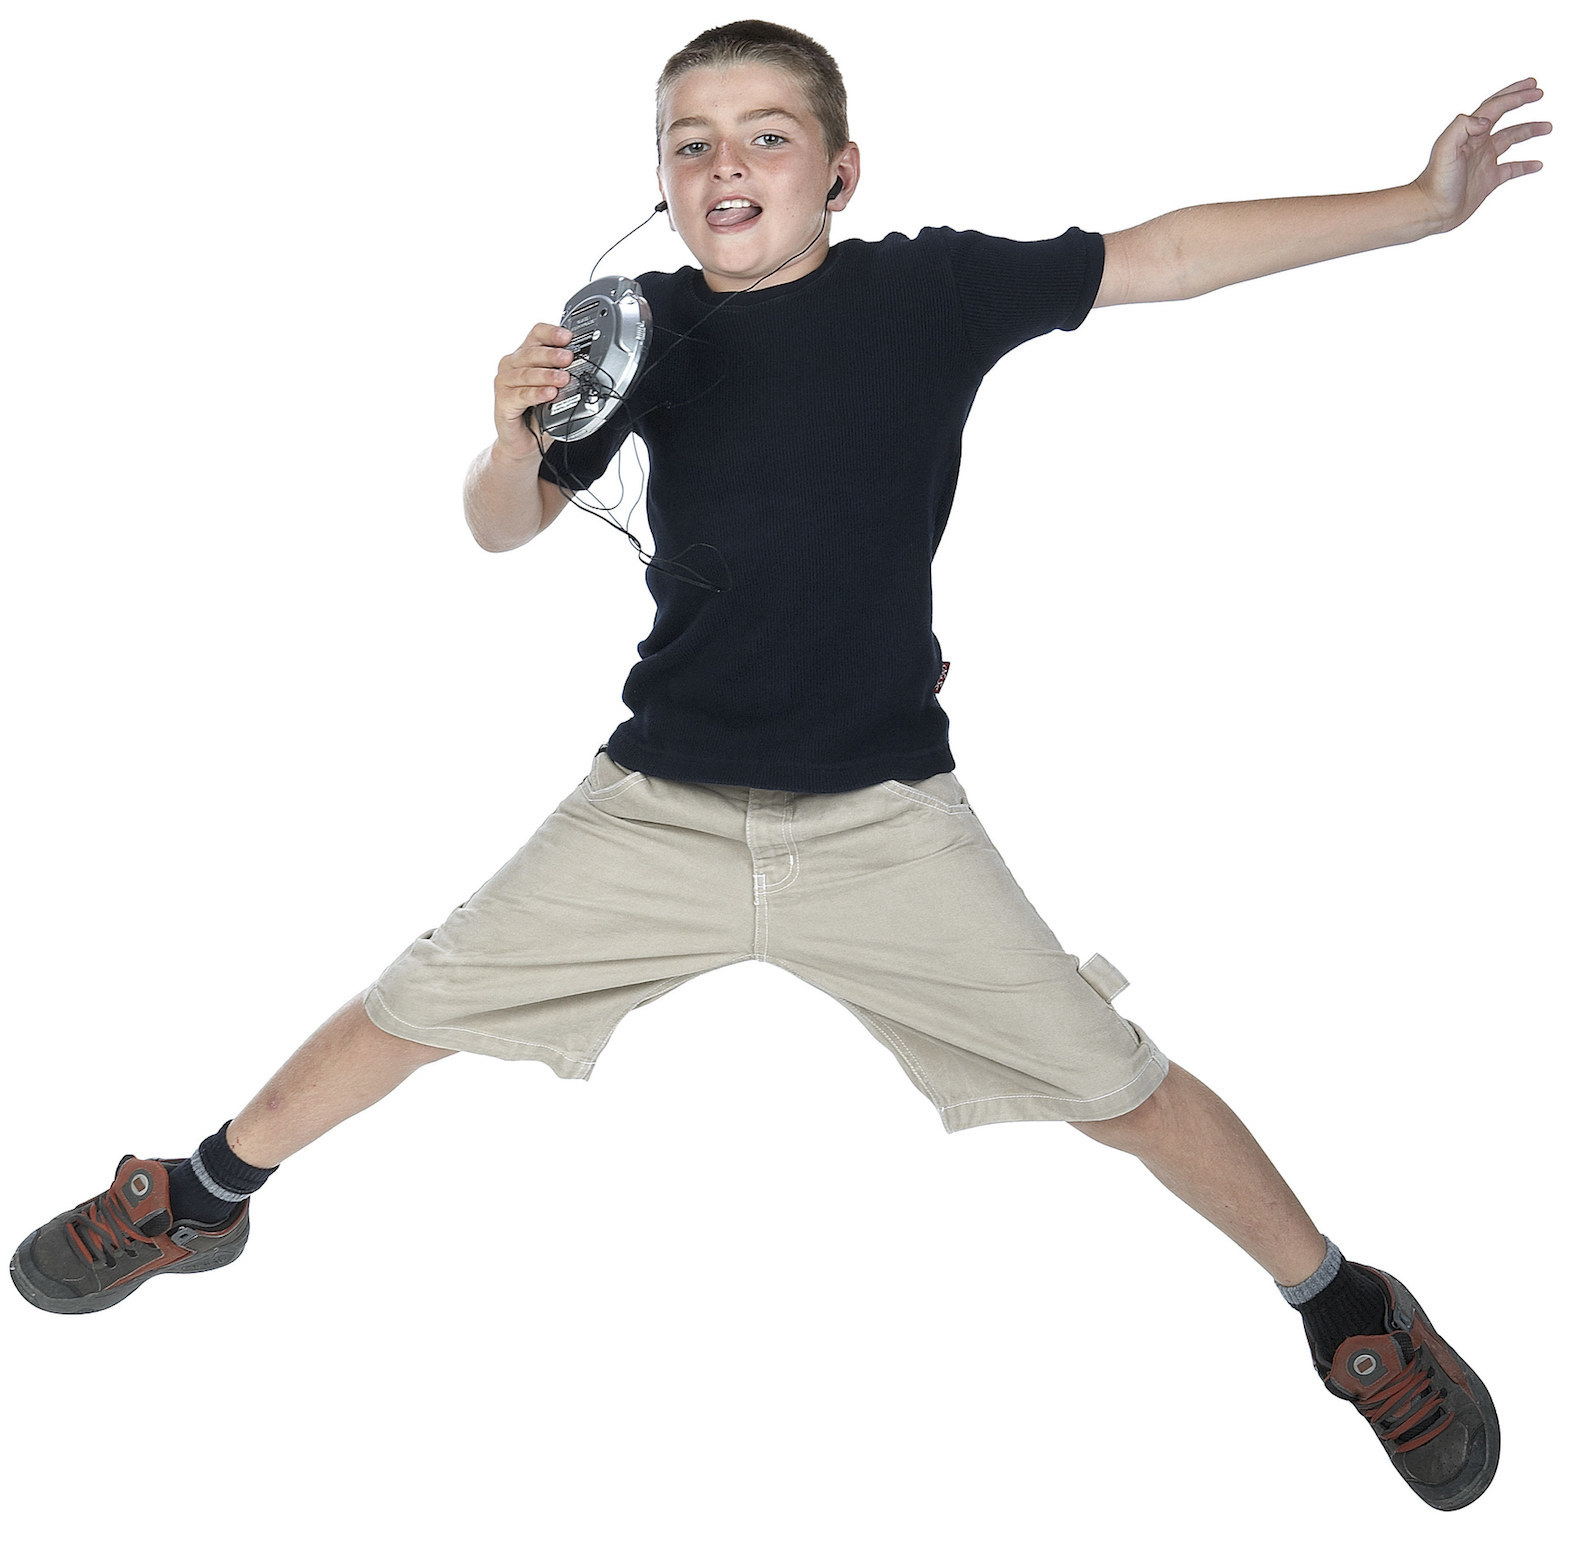 Stock image of kid jumping while listening to music on portable CD